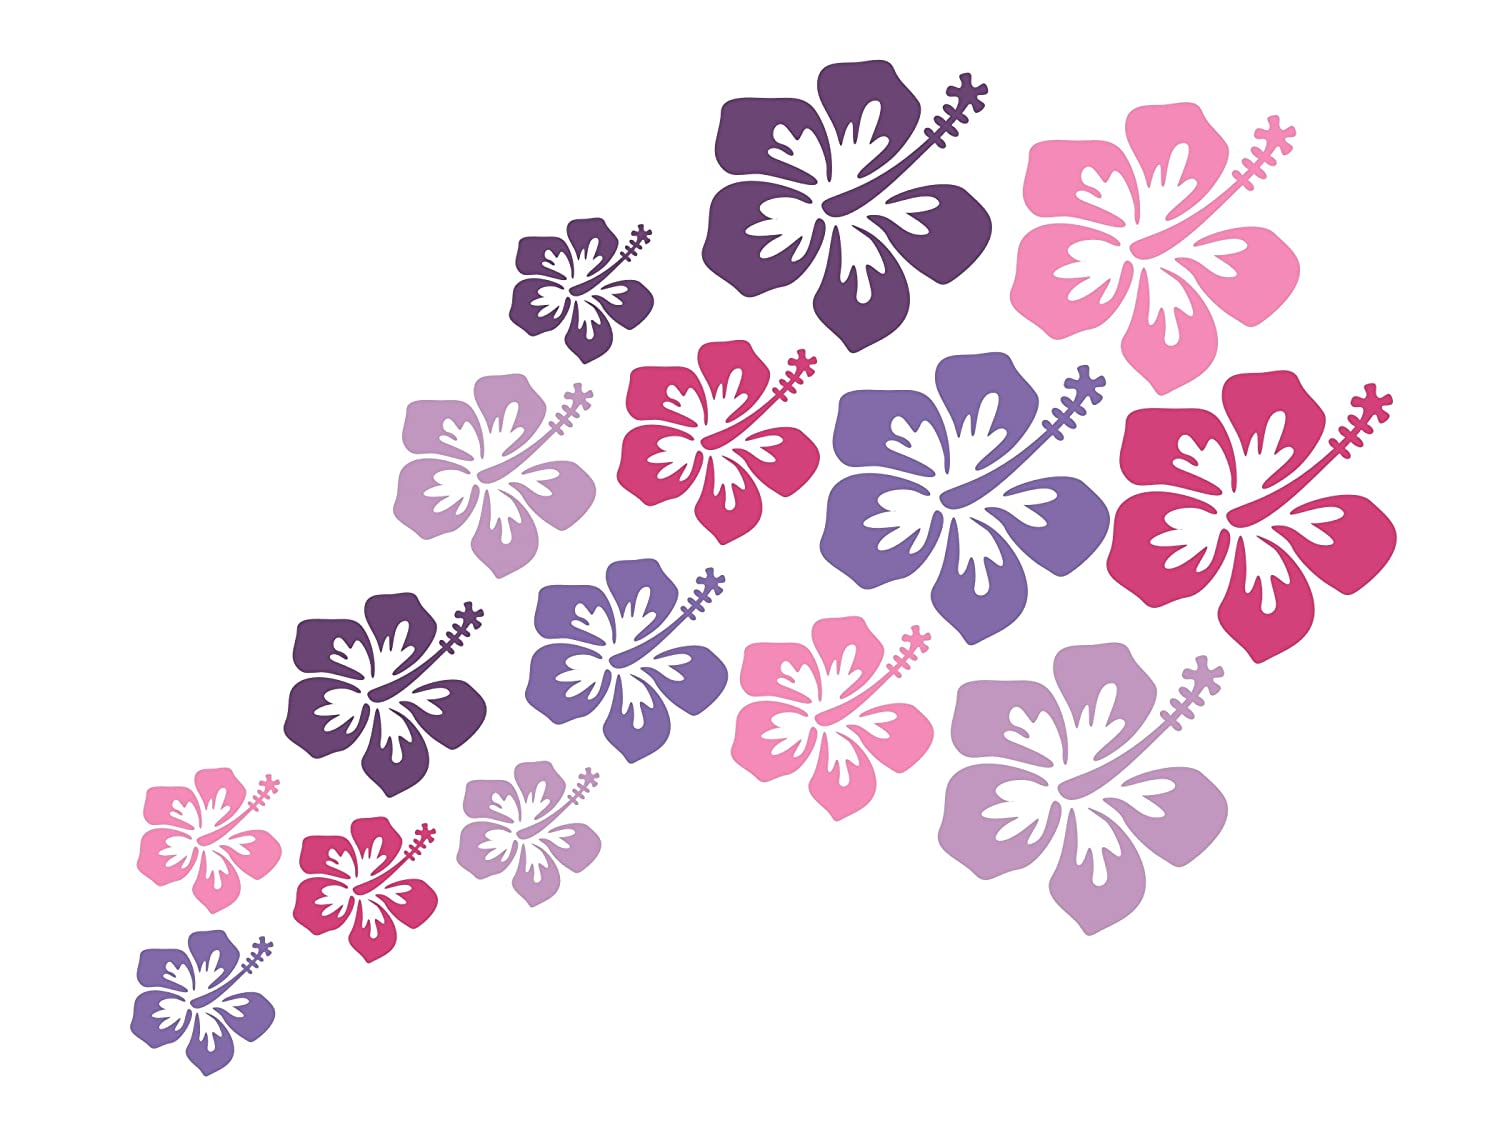 Wandtattooshop H1M5 Wall Stickers Hibiscus Flowers Colour Mix Pack of 15, 5-10cm 5-10cm wandtattooshop.eu